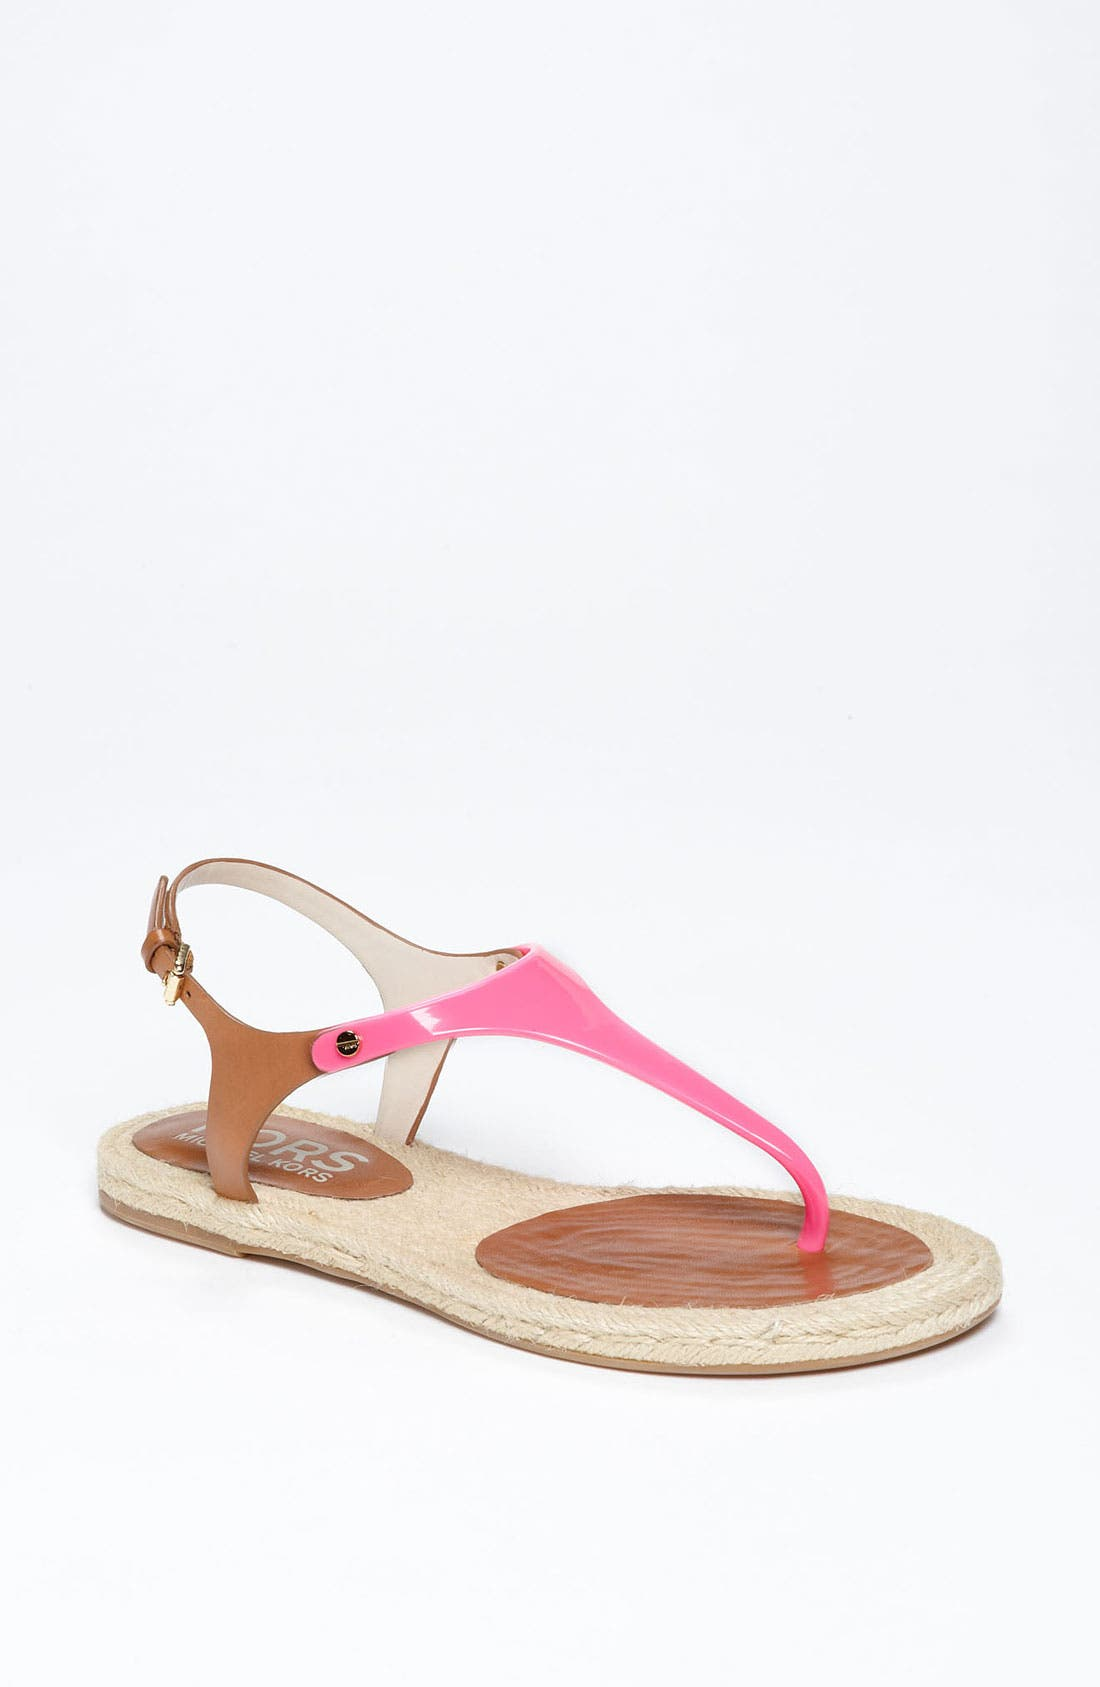 Main Image - KORS Michael Kors 'Stephy' Sandal